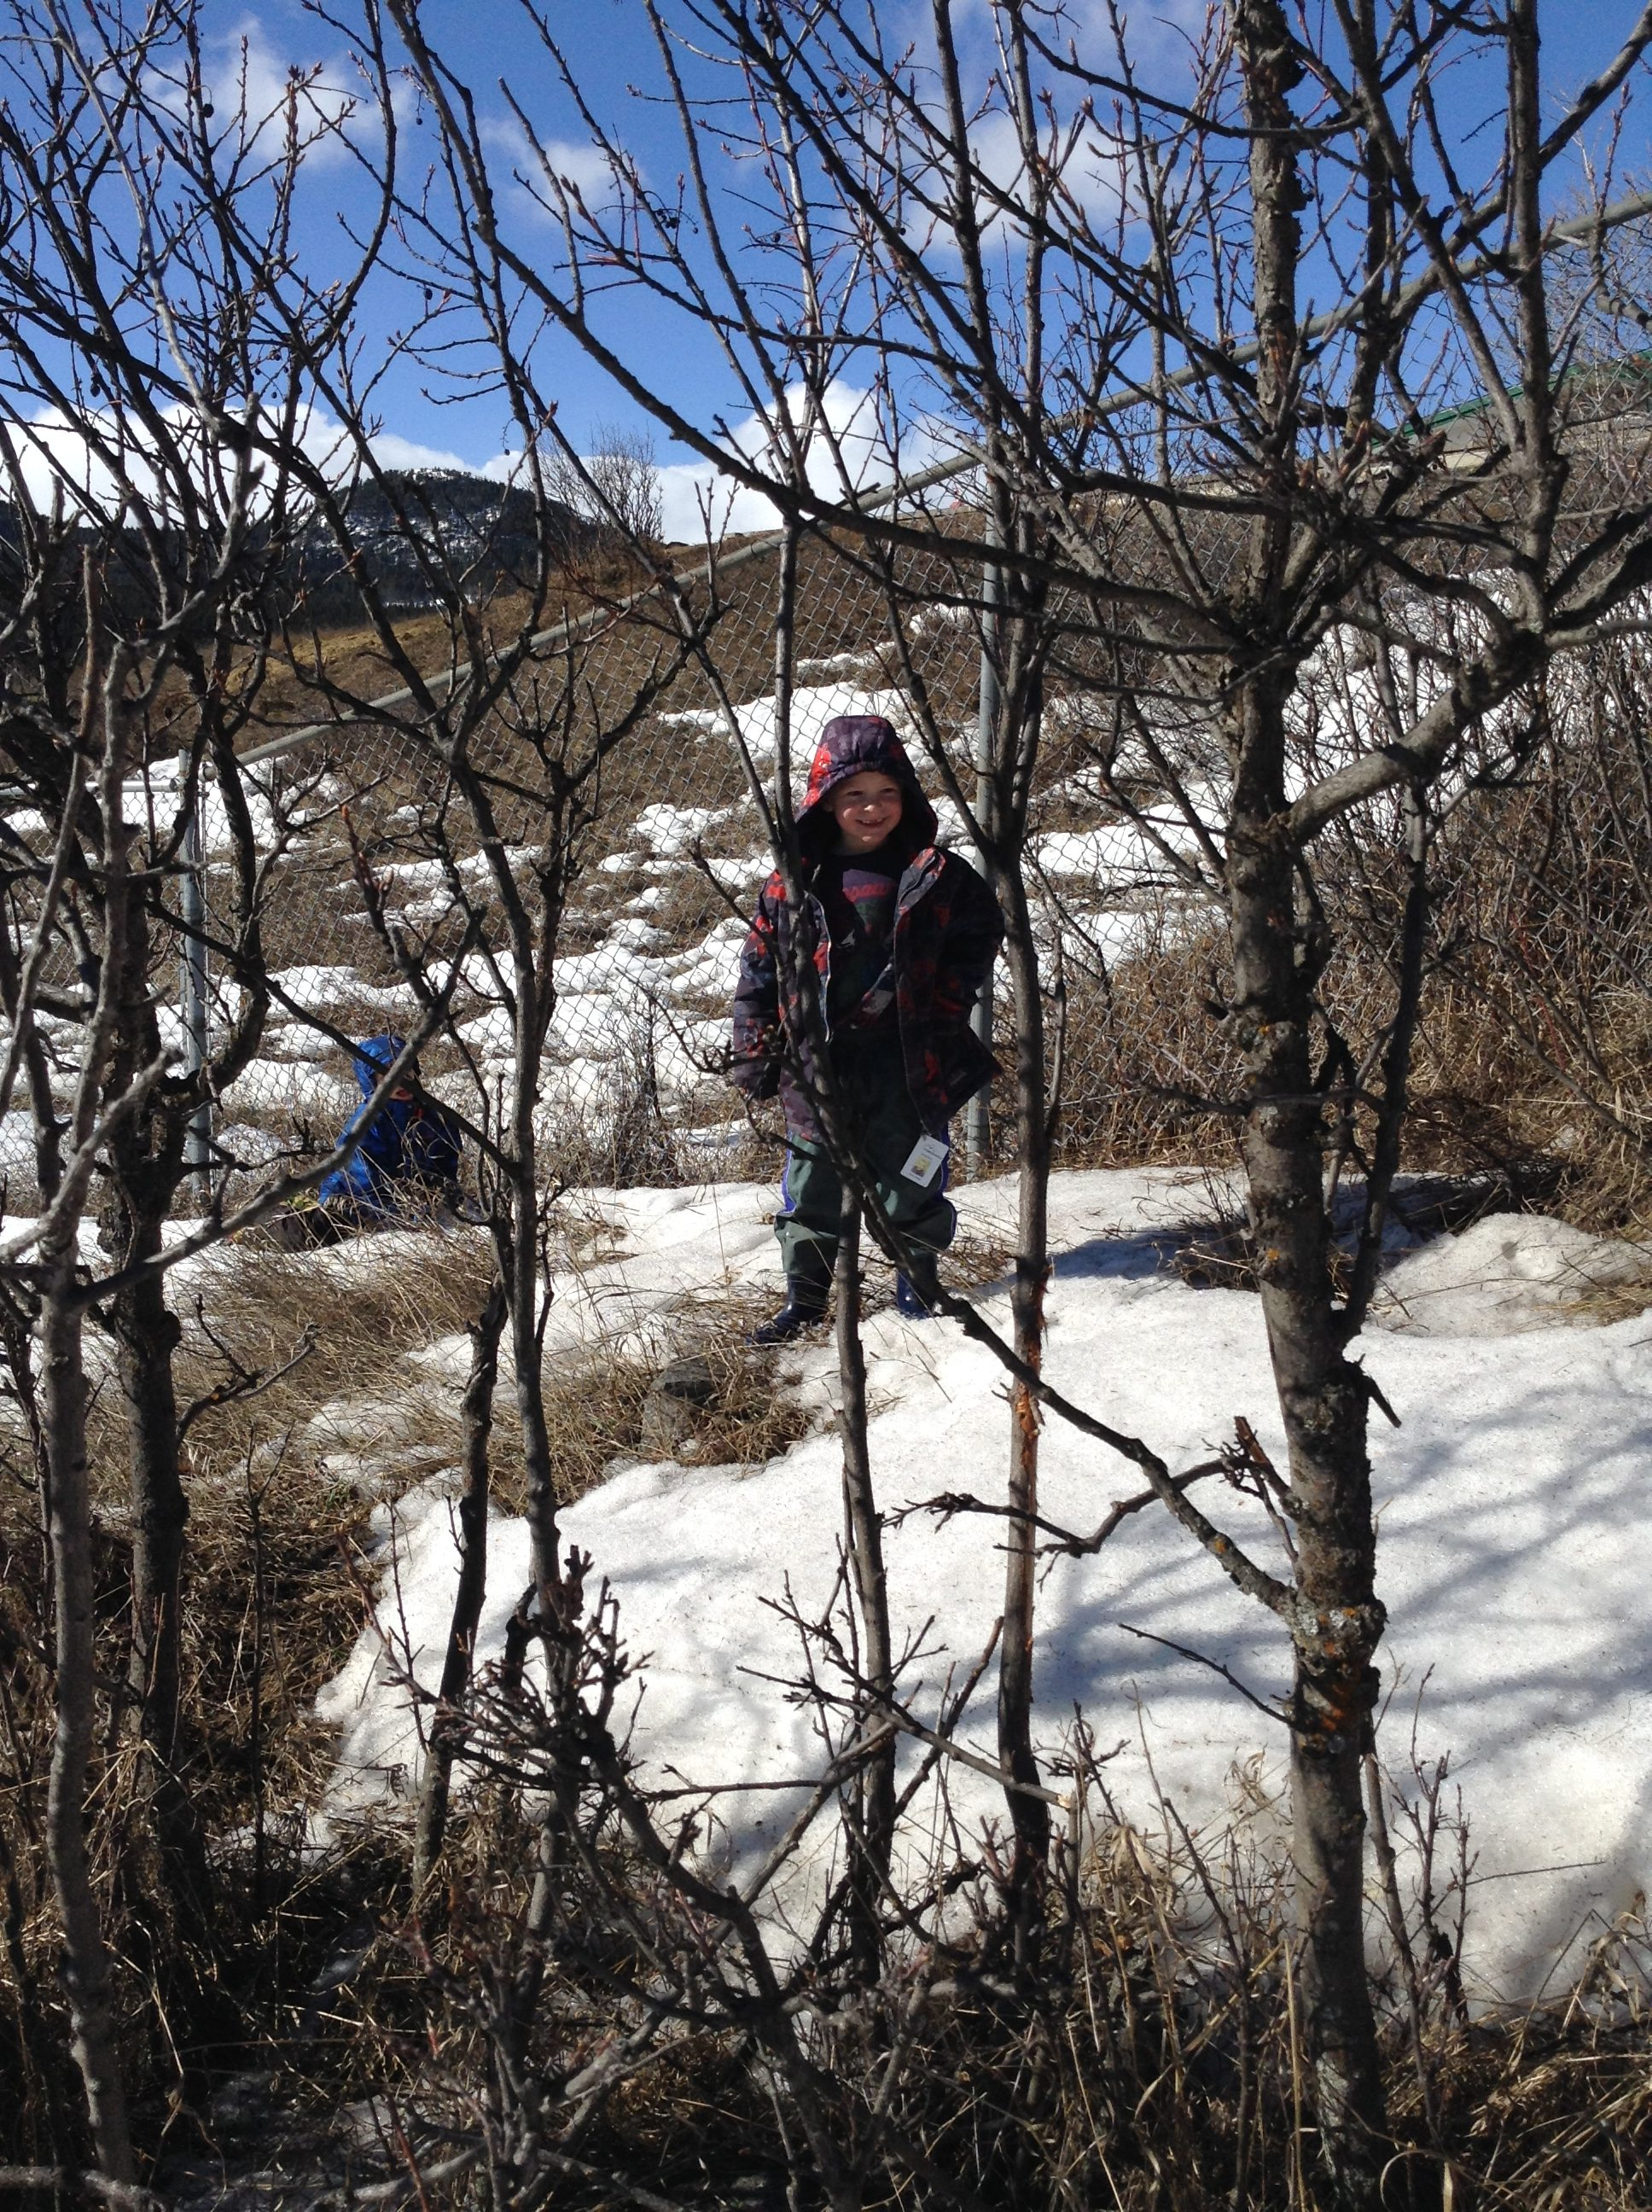 Risky Play Why Children Love It And >> Risky Play On The Schoolyard Child And Nature Alliance Of Canada